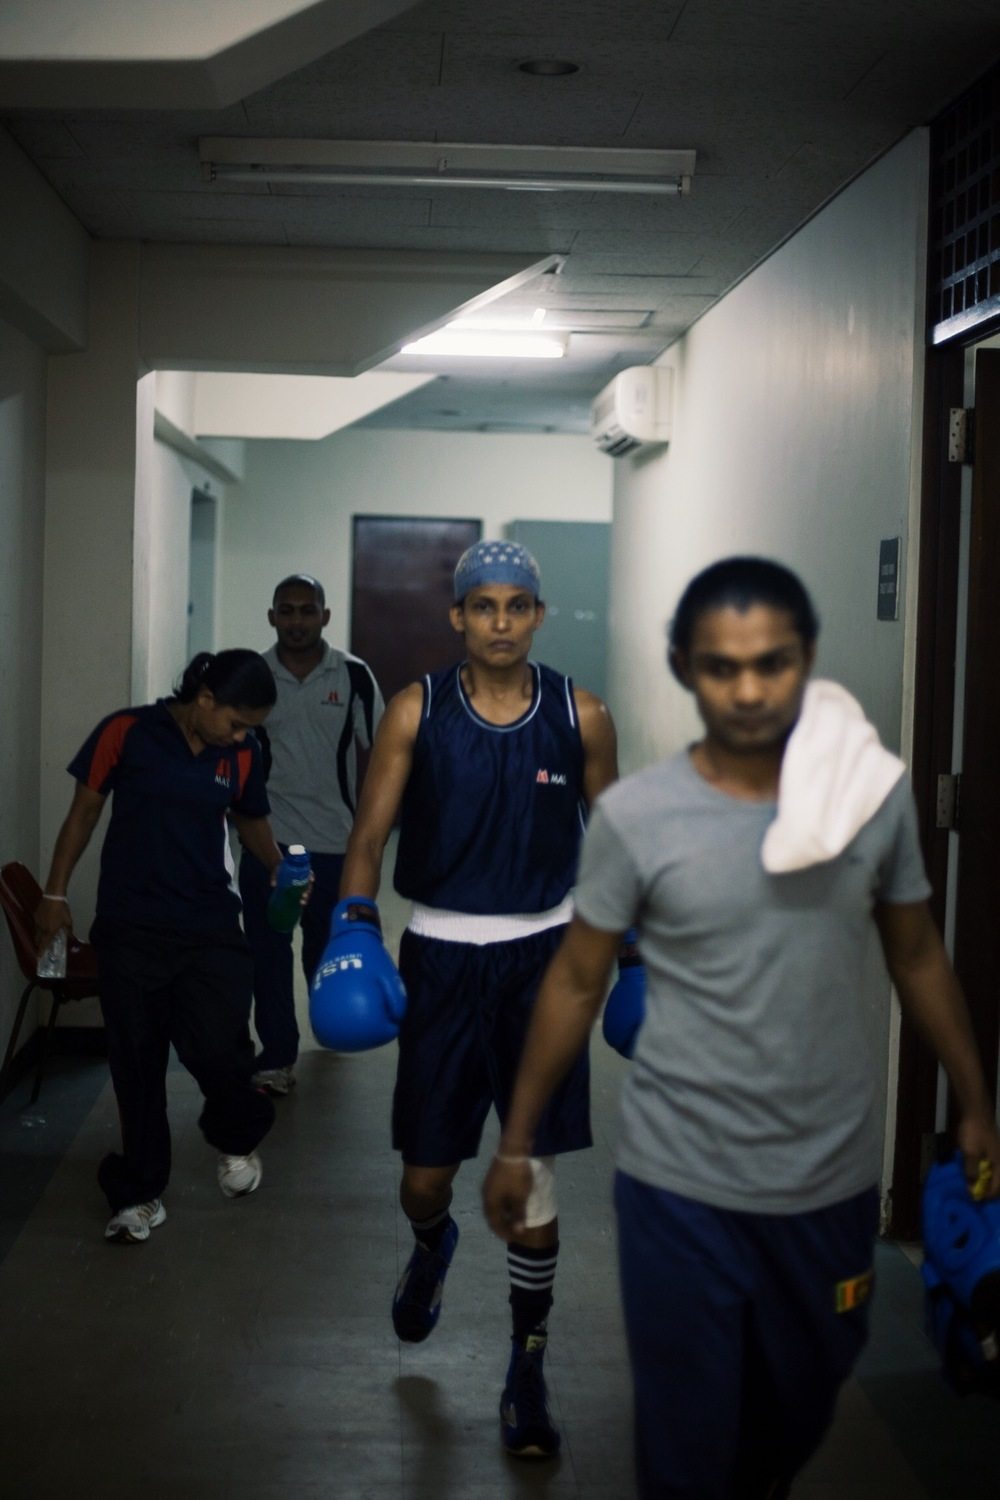 Anusha Kodituwakku on her way to ring with coach Anuruddha Ratnayake (© Lee Bazalgette)